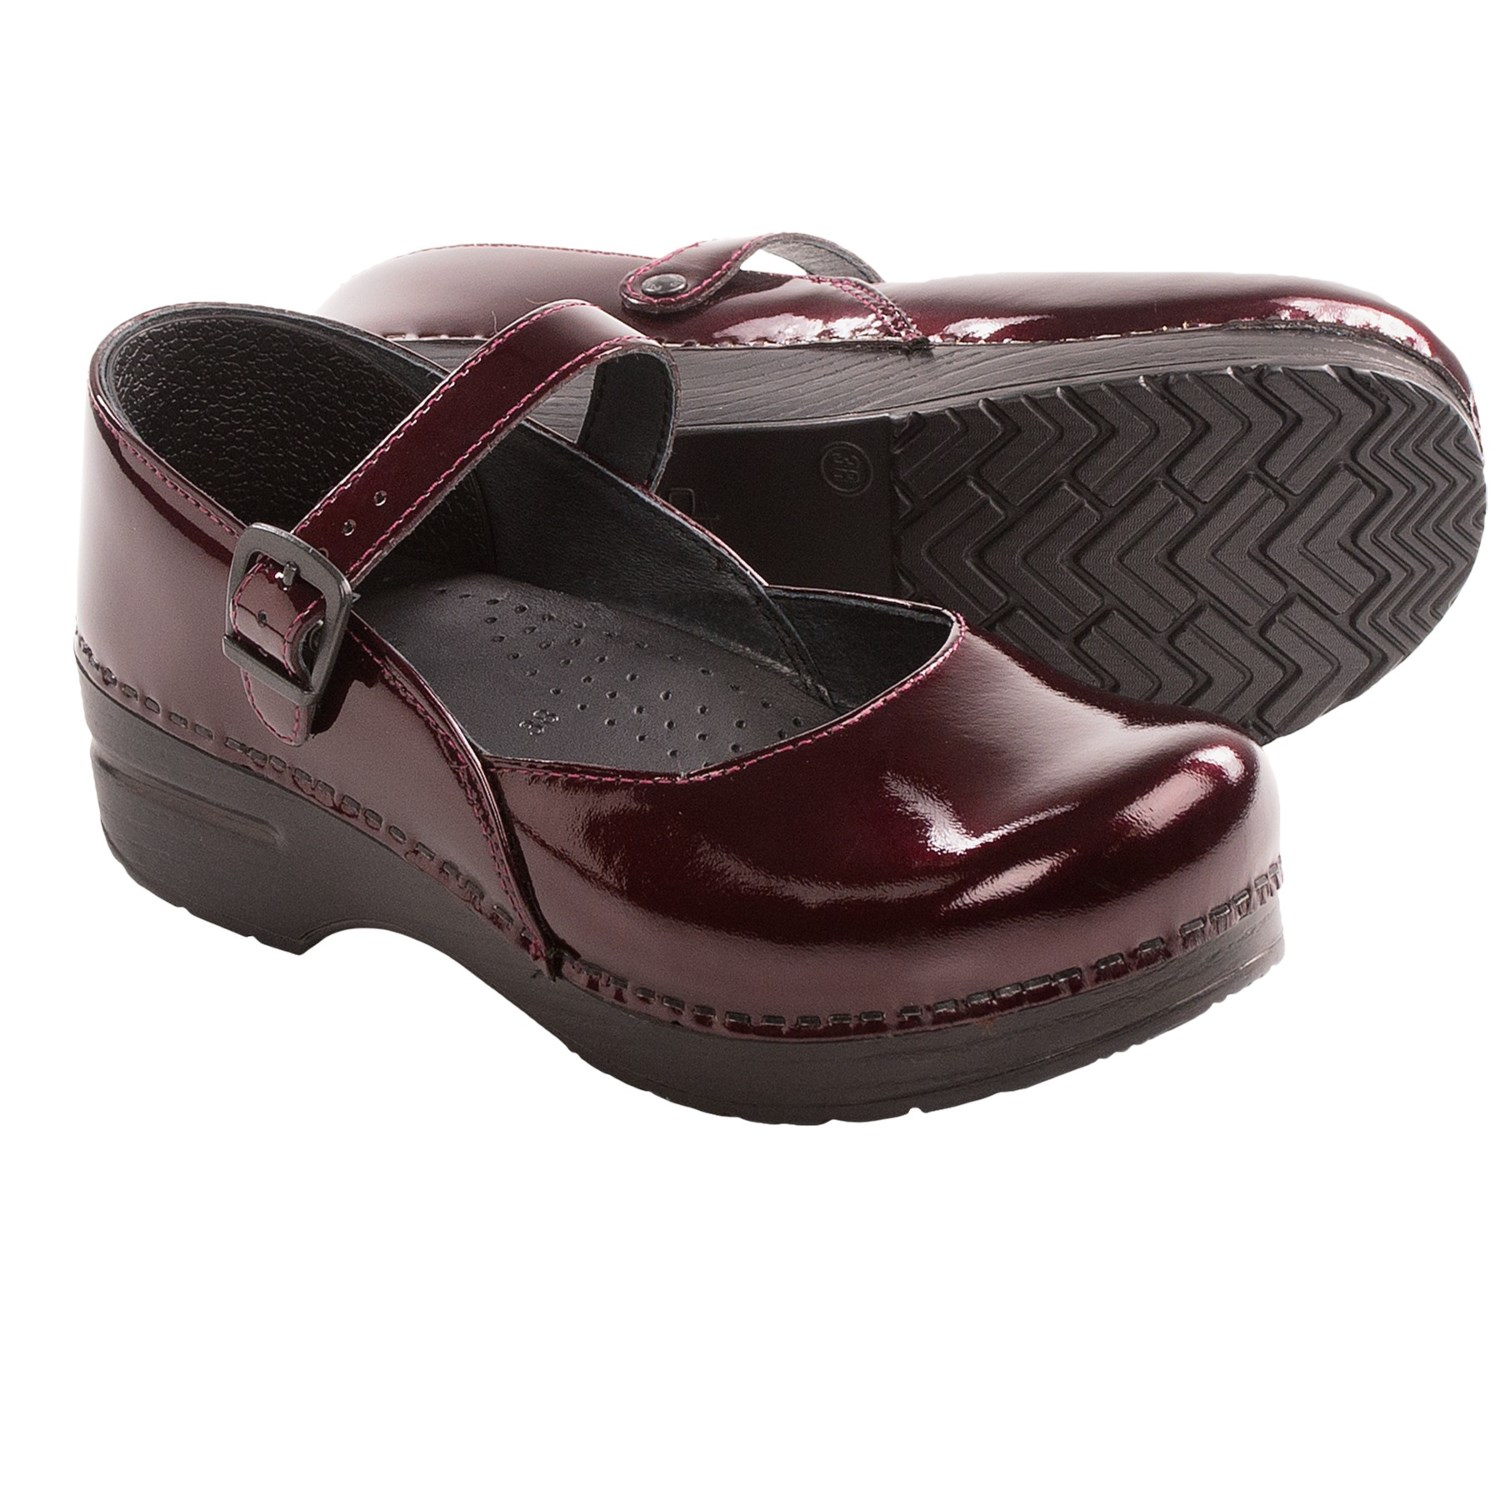 Dansko Mary Jane Shoes - Patent Leather (For Women) in Black Cherry